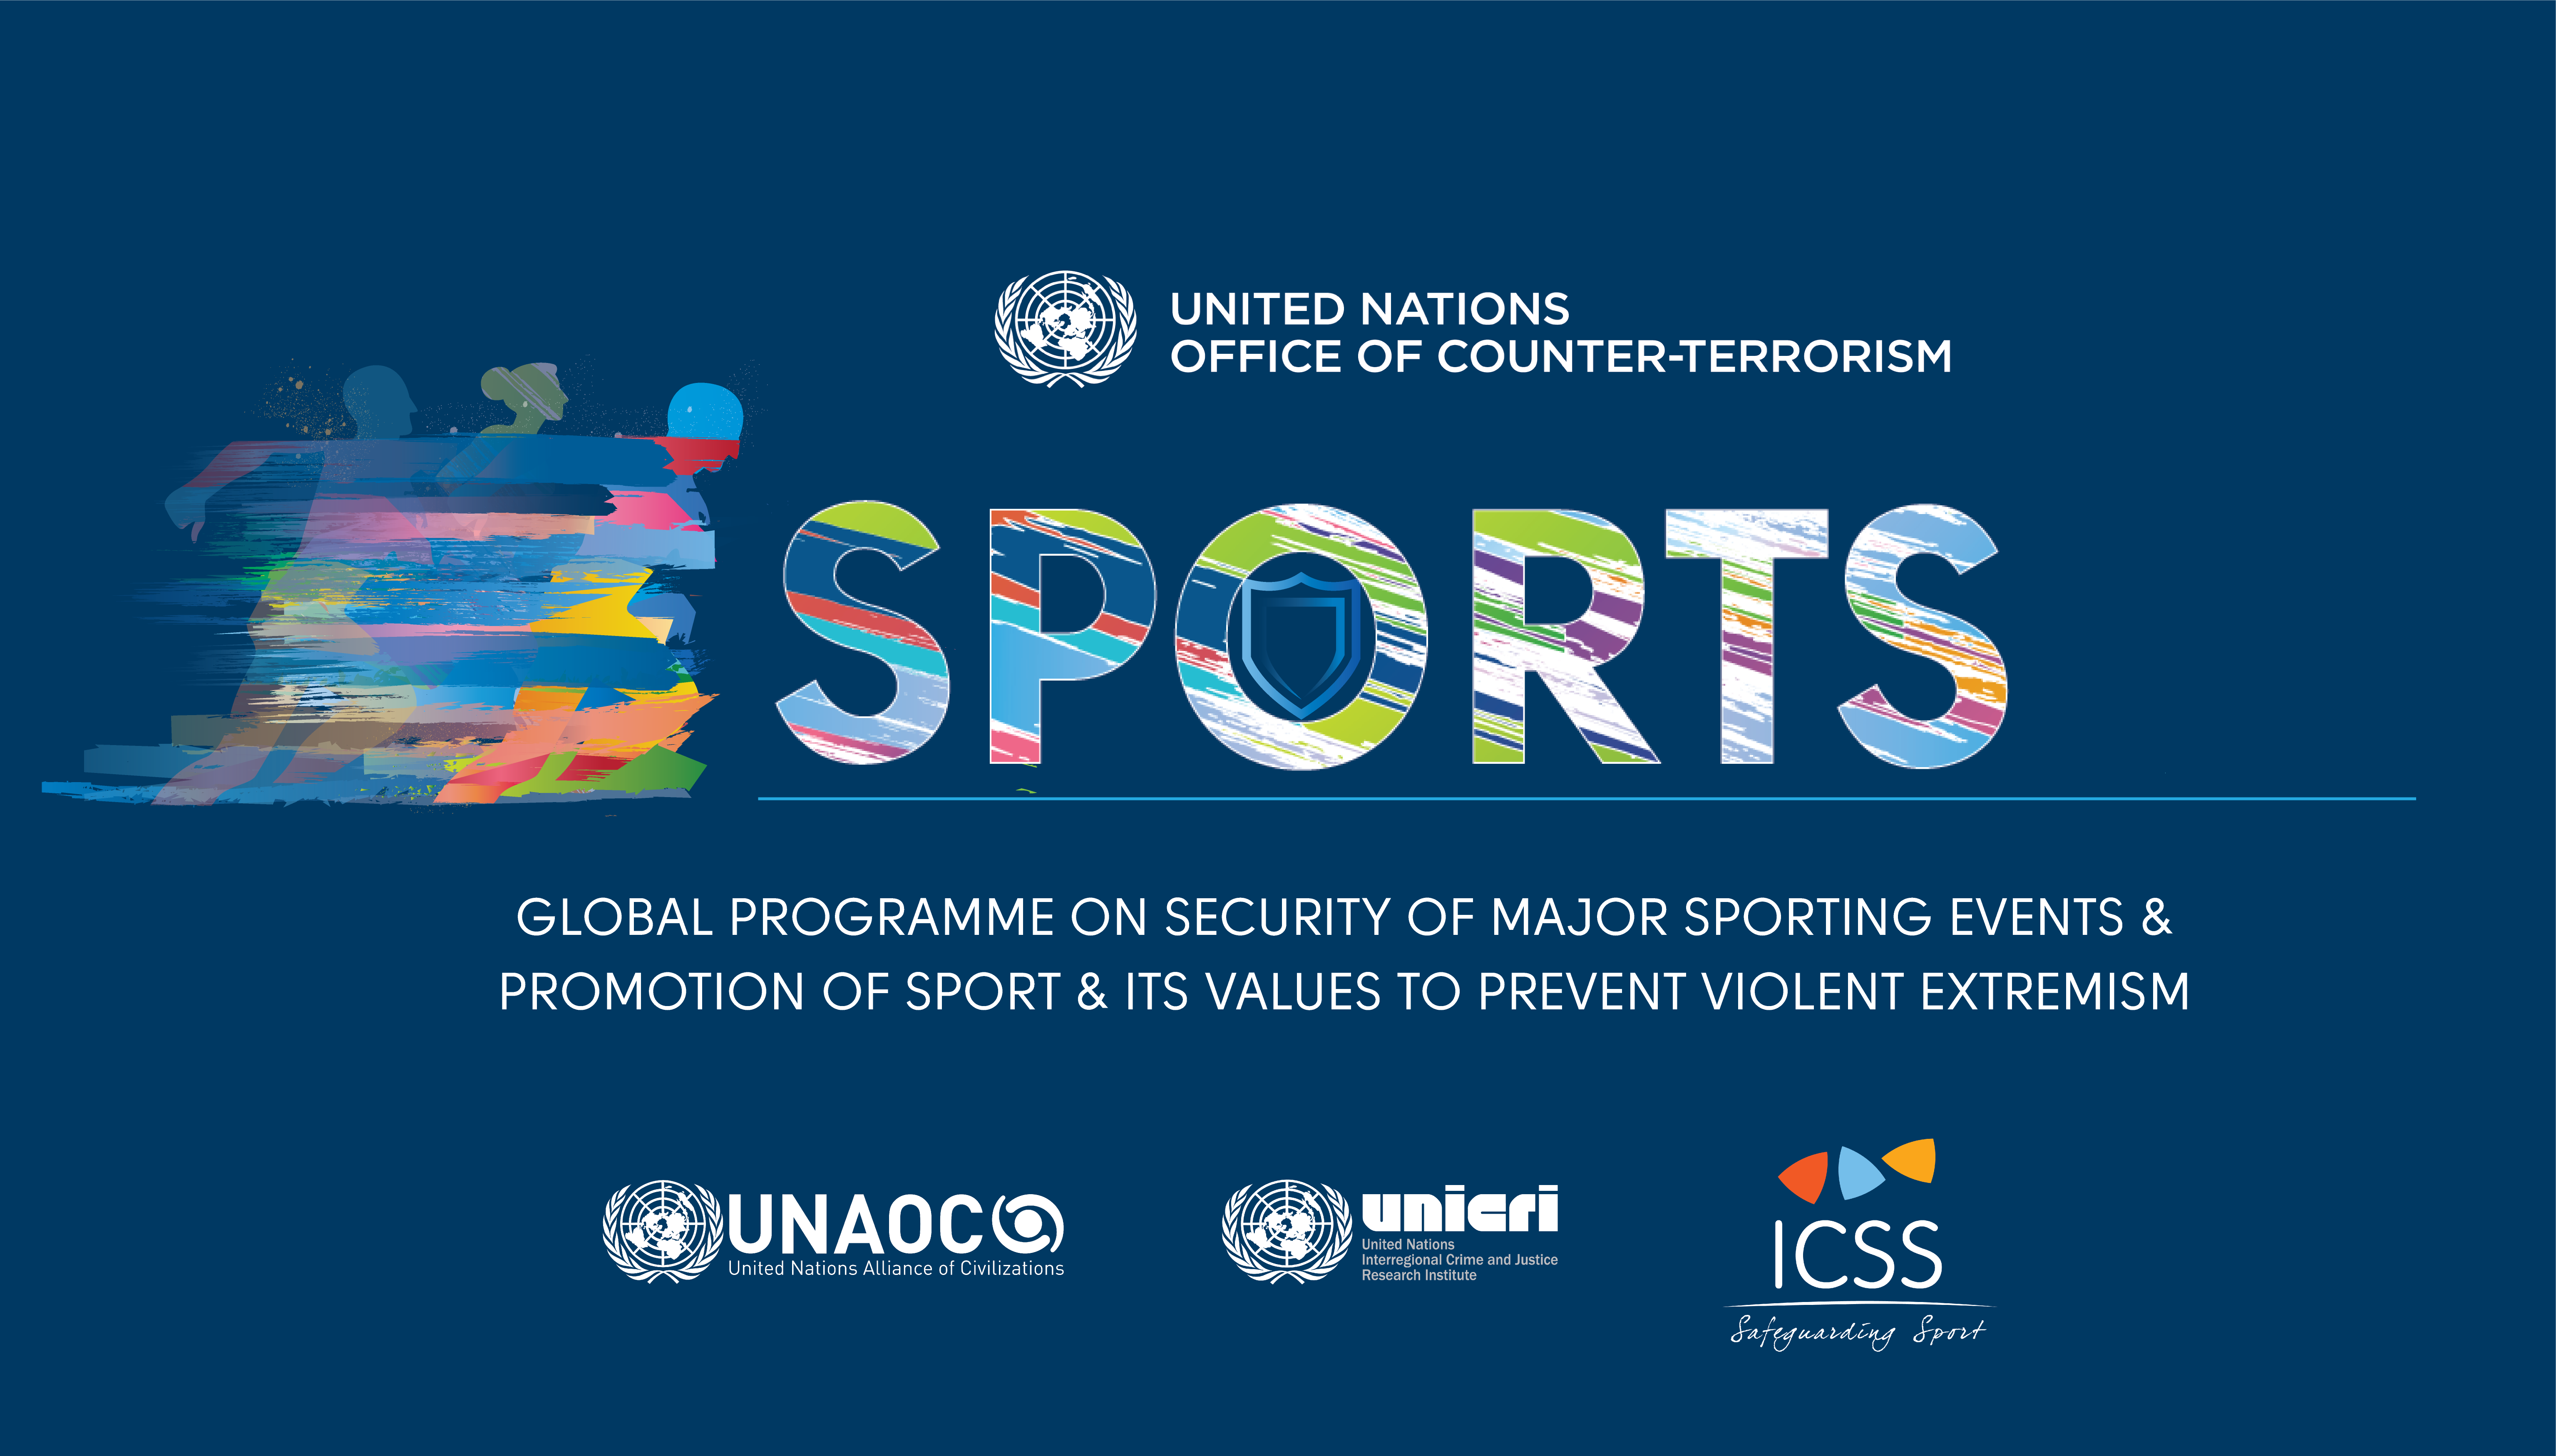 Launch event of UNOCT's sport and security programme